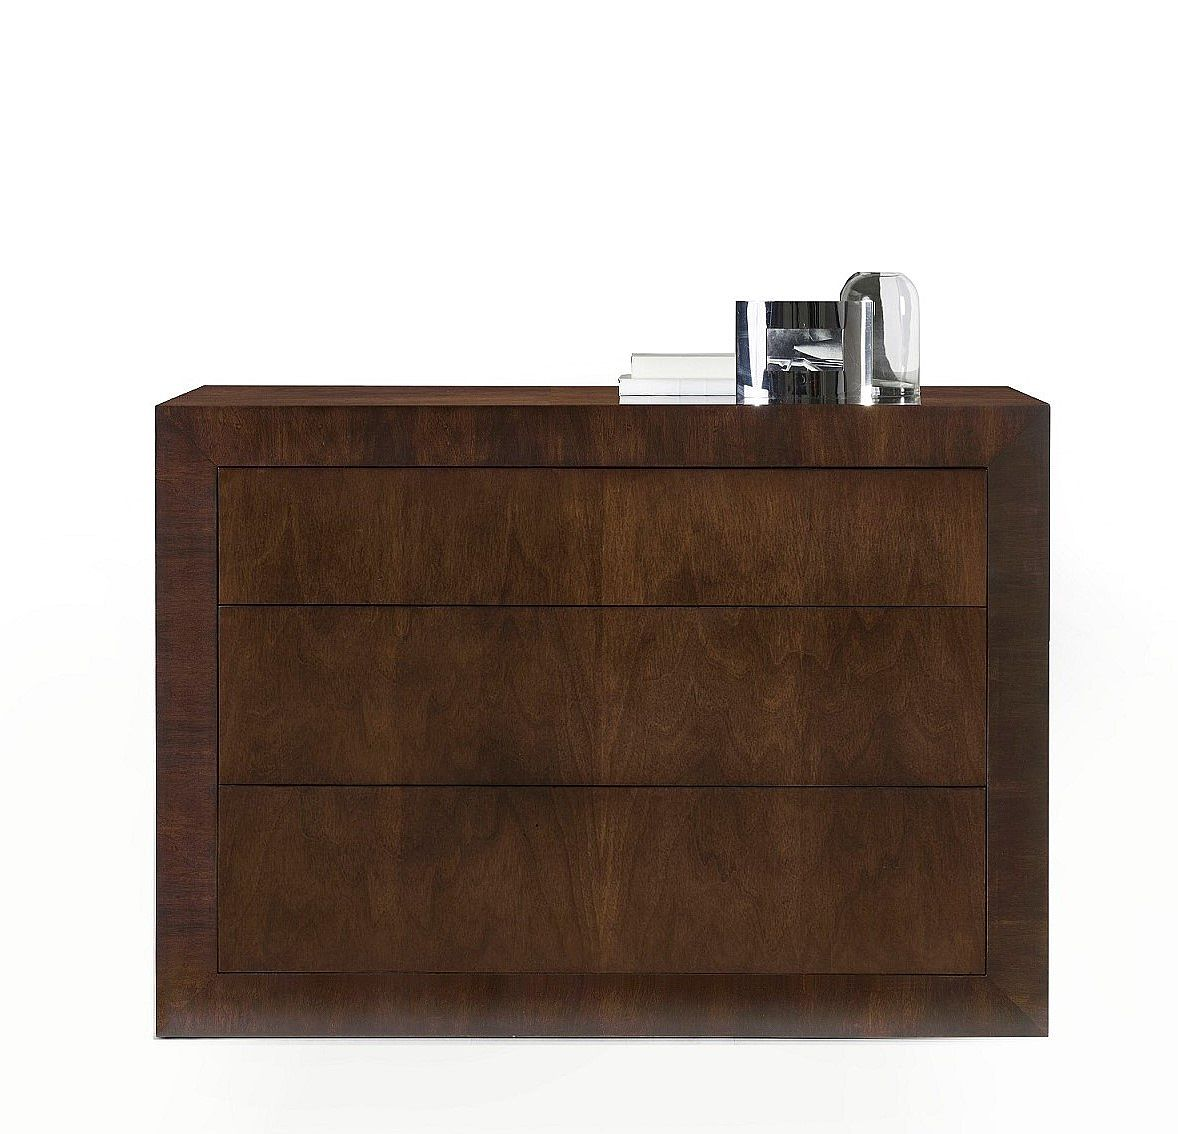 contemporary bedroom chest of three drawers 18537 | t 877 contemporary bedroom chest of three drawers 0